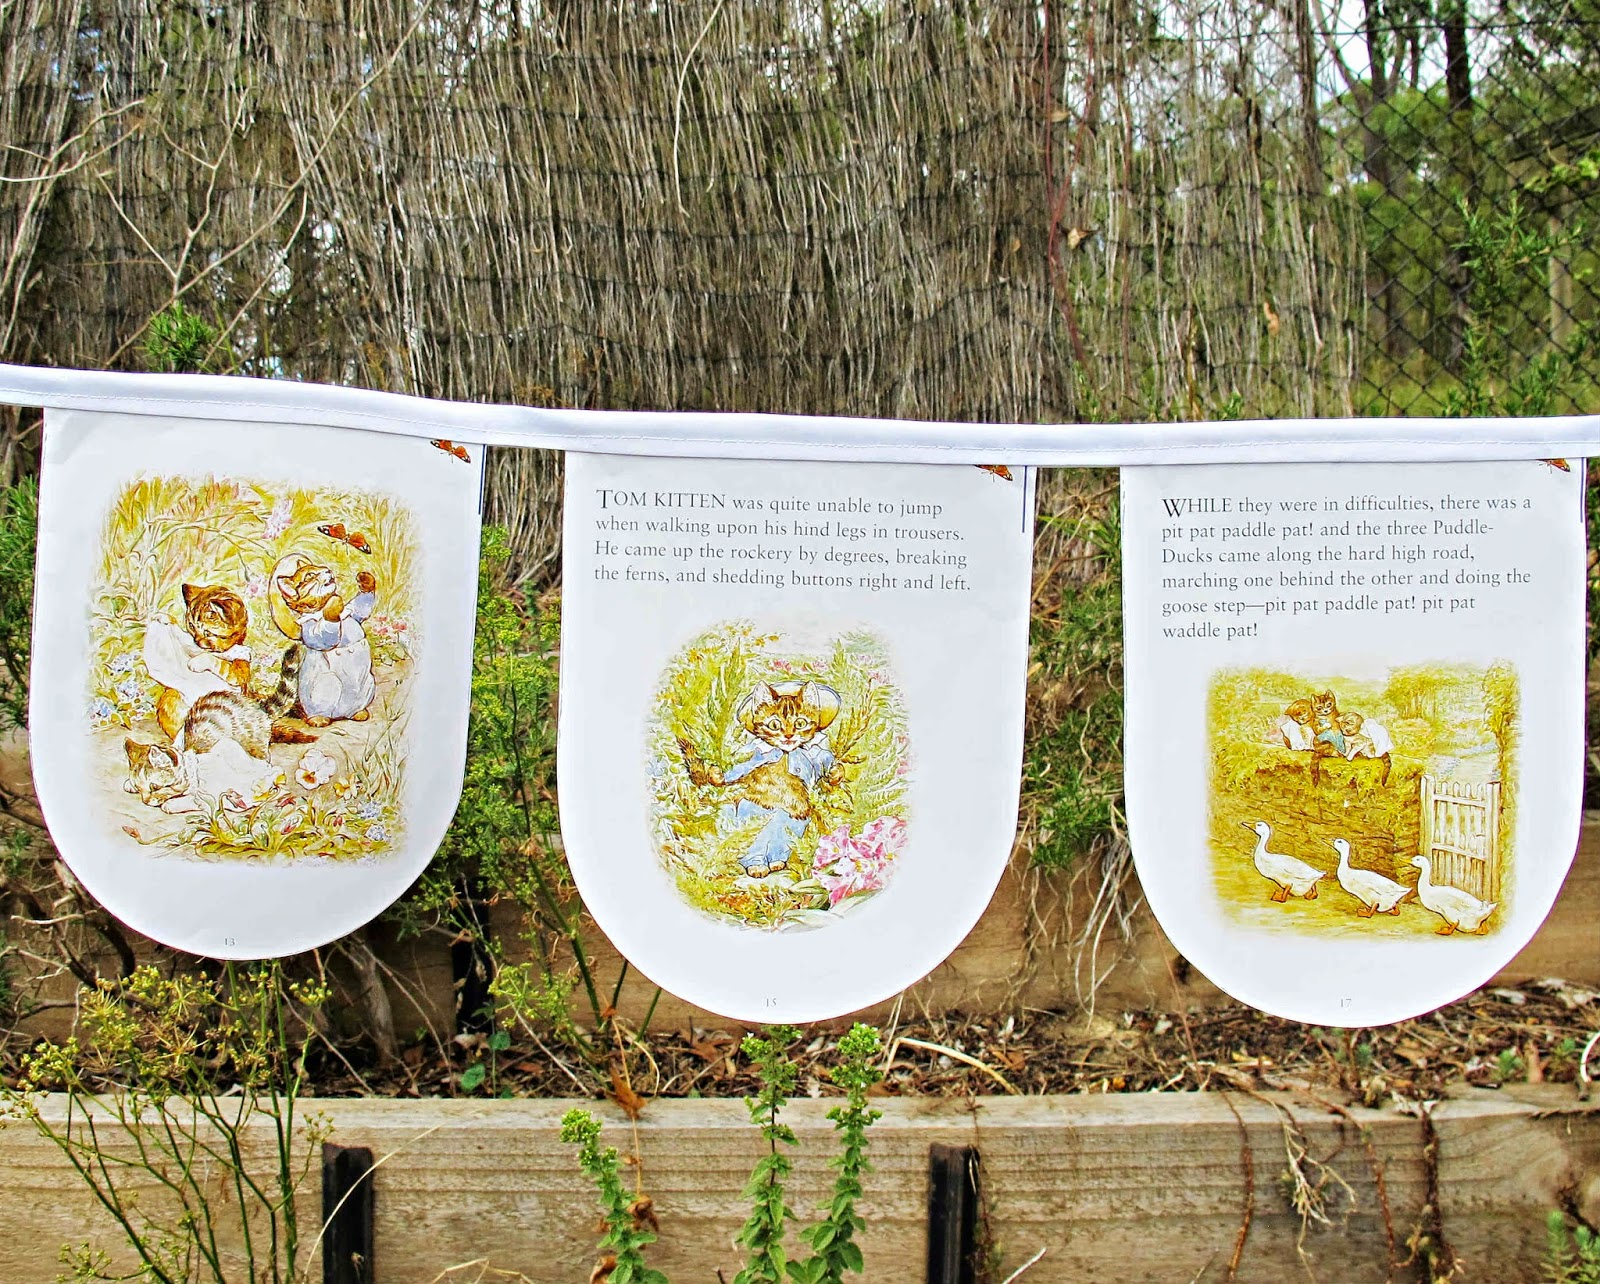 image bunting domum vindemia beatrix potter the tale of tom kitten